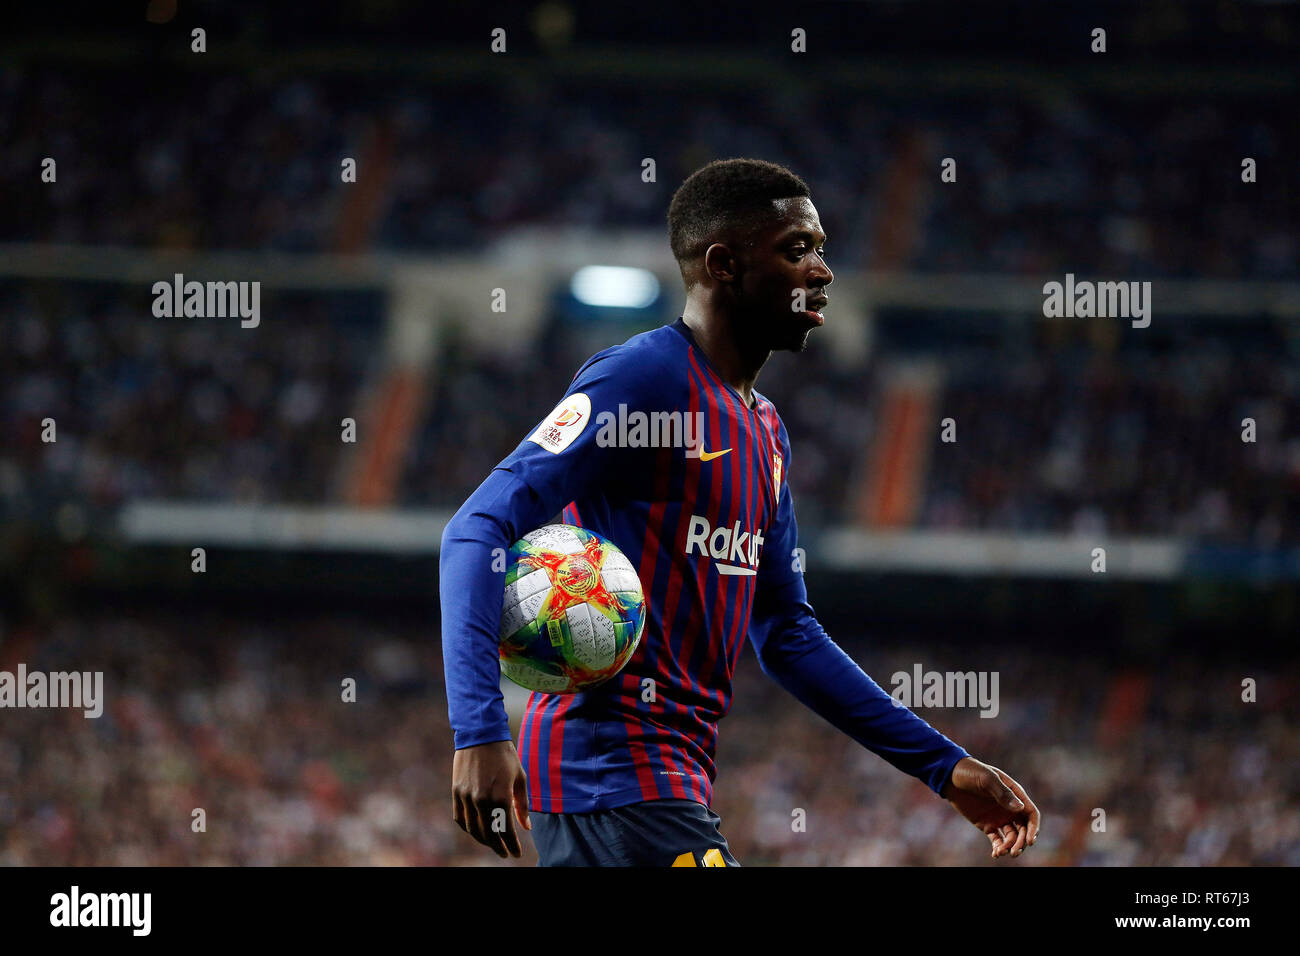 Ousmane Dembele in action during the Copa del Rey semi final second leg match between Real Madrid CF and FC Barcelona at Santiago Bernabeu Stadium. (Final score Real Madrid 0-3 FC Barcelona) - Stock Image